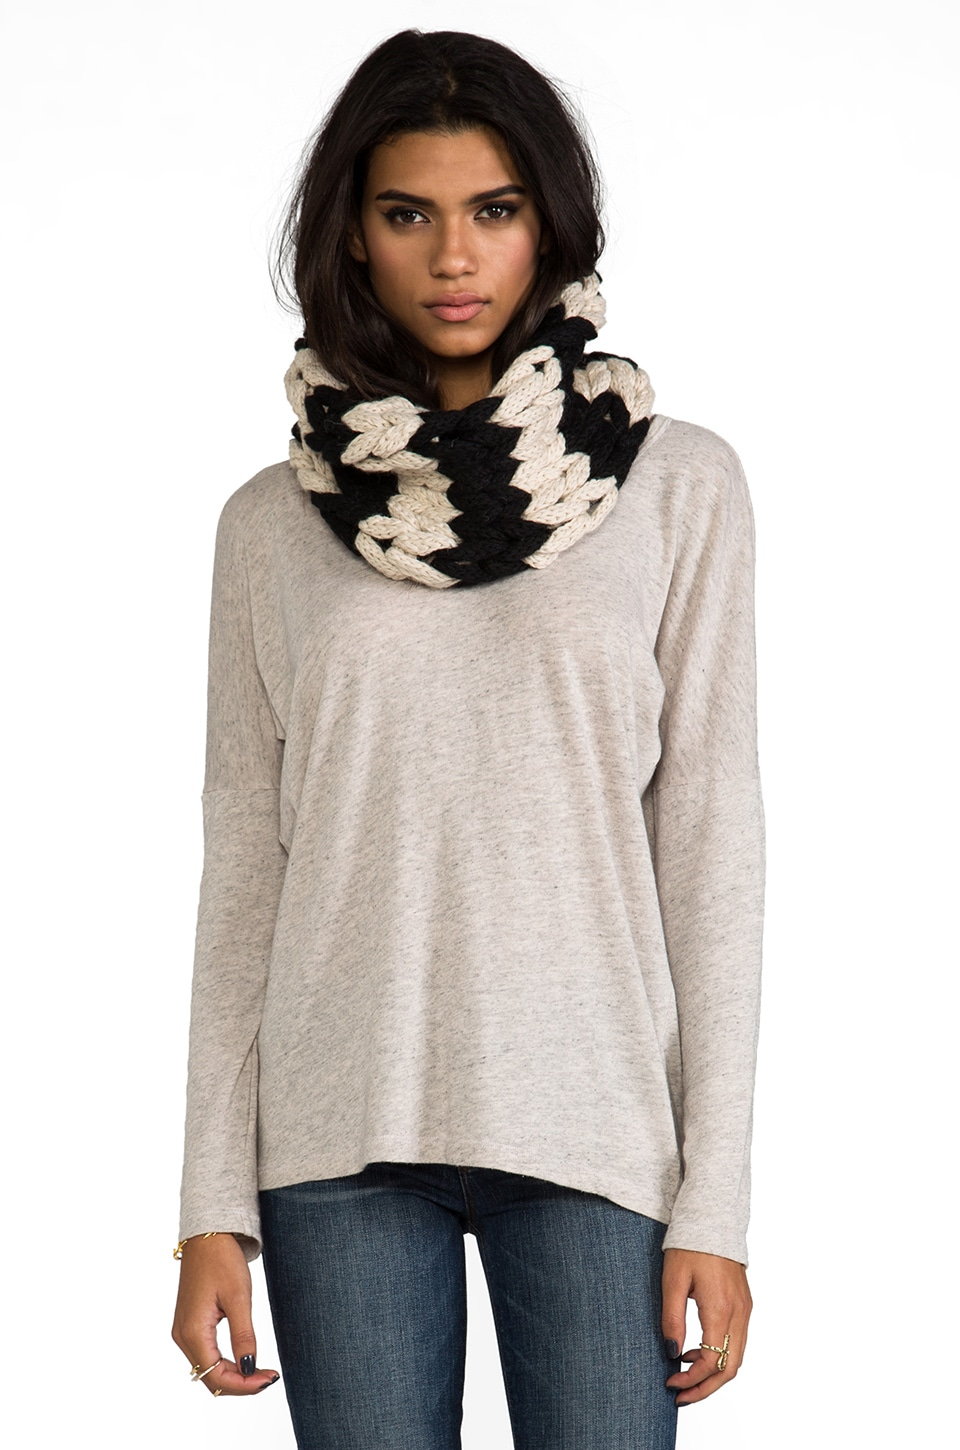 DE NADA Large Knit Cowl in Black/Cream